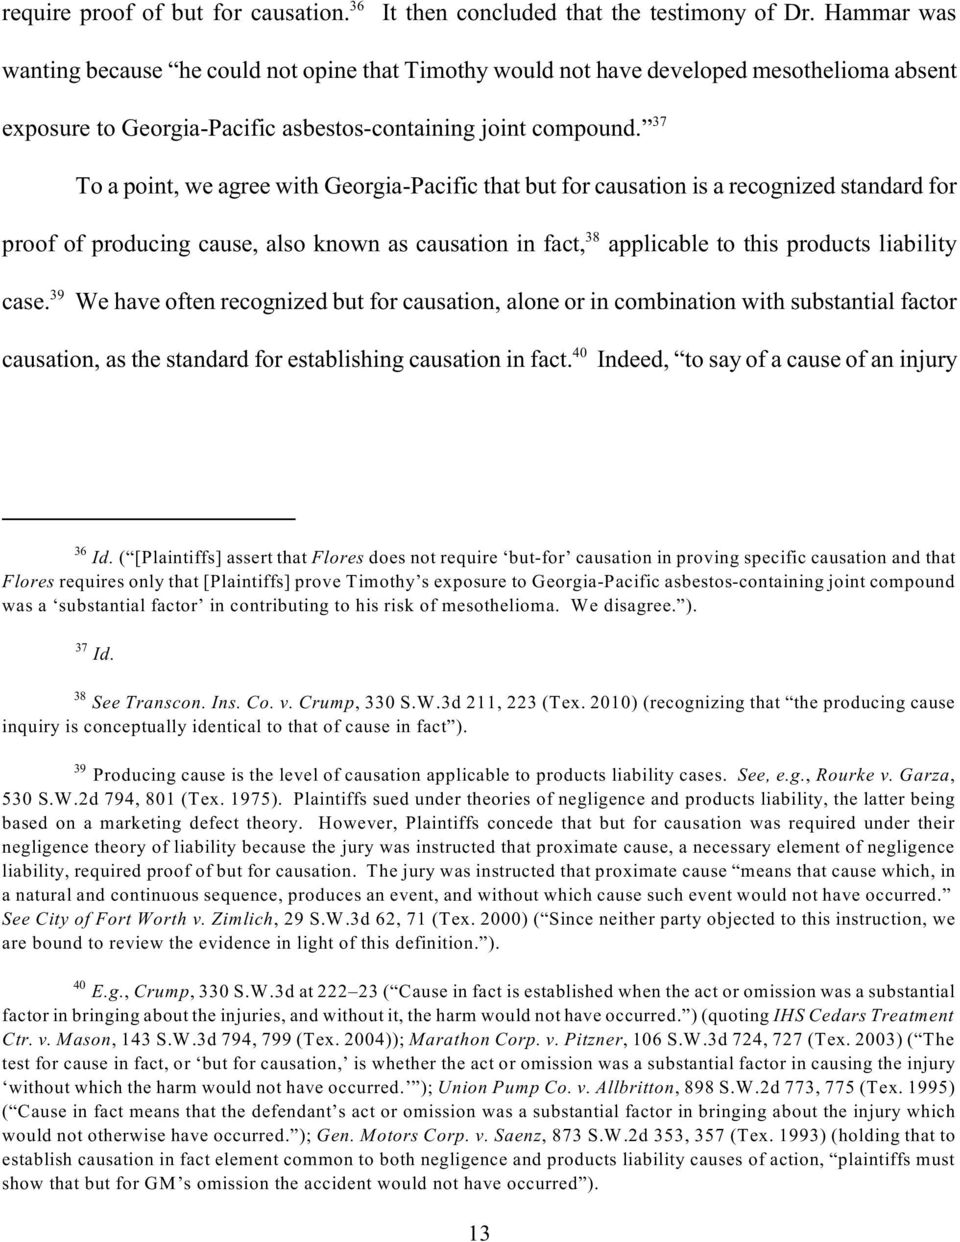 37 To a point, we agree with Georgia-Pacific that but for causation is a recognized standard for 38 proof of producing cause, also known as causation in fact, applicable to this products liability 39